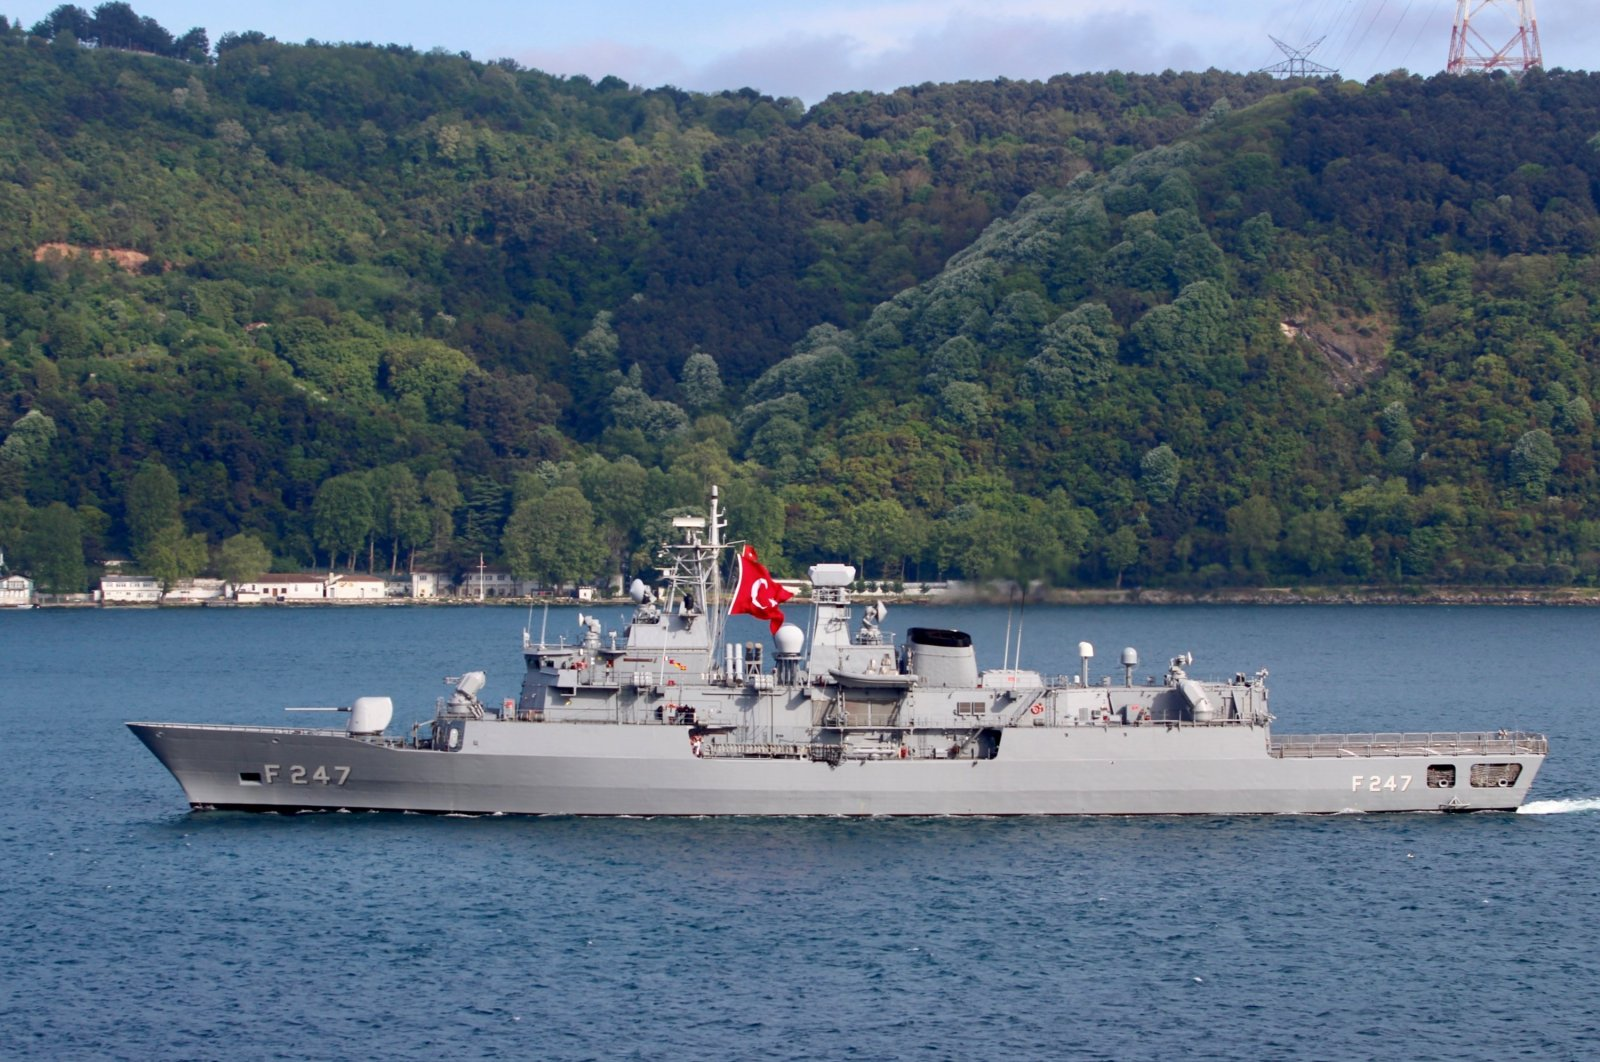 Turkish Navy frigate TCG Kemal Reis (F-247) is pictured in the Bosporus strait in Istanbul, Turkey May 13, 2019. (Reuters File Photo)